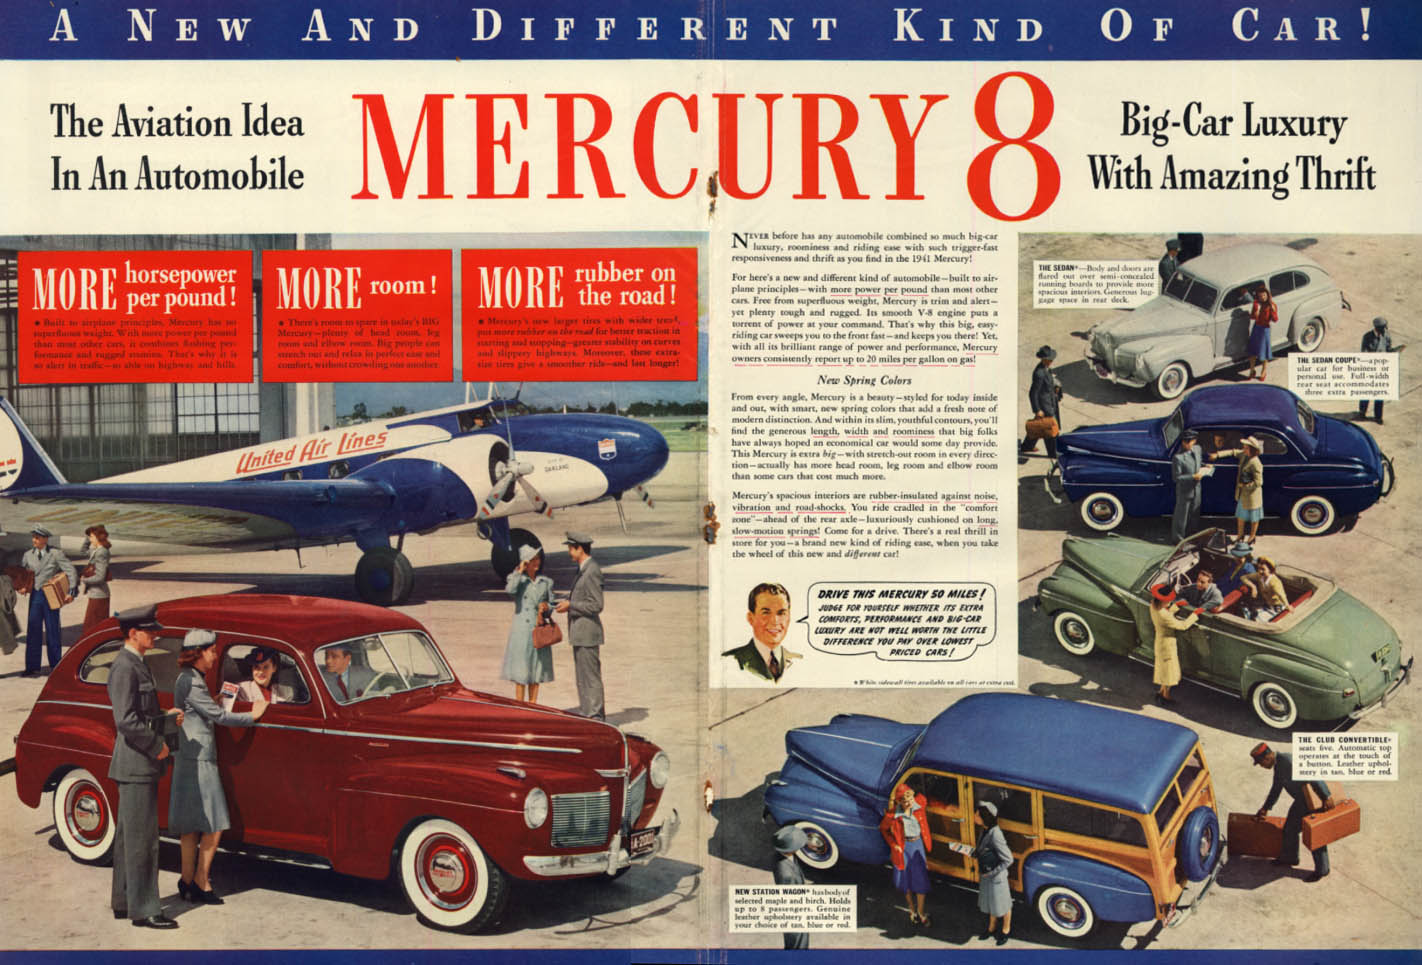 Image for The Aviation Idea in the Mercury ad 1941 United Air Lines Boeing 247 L